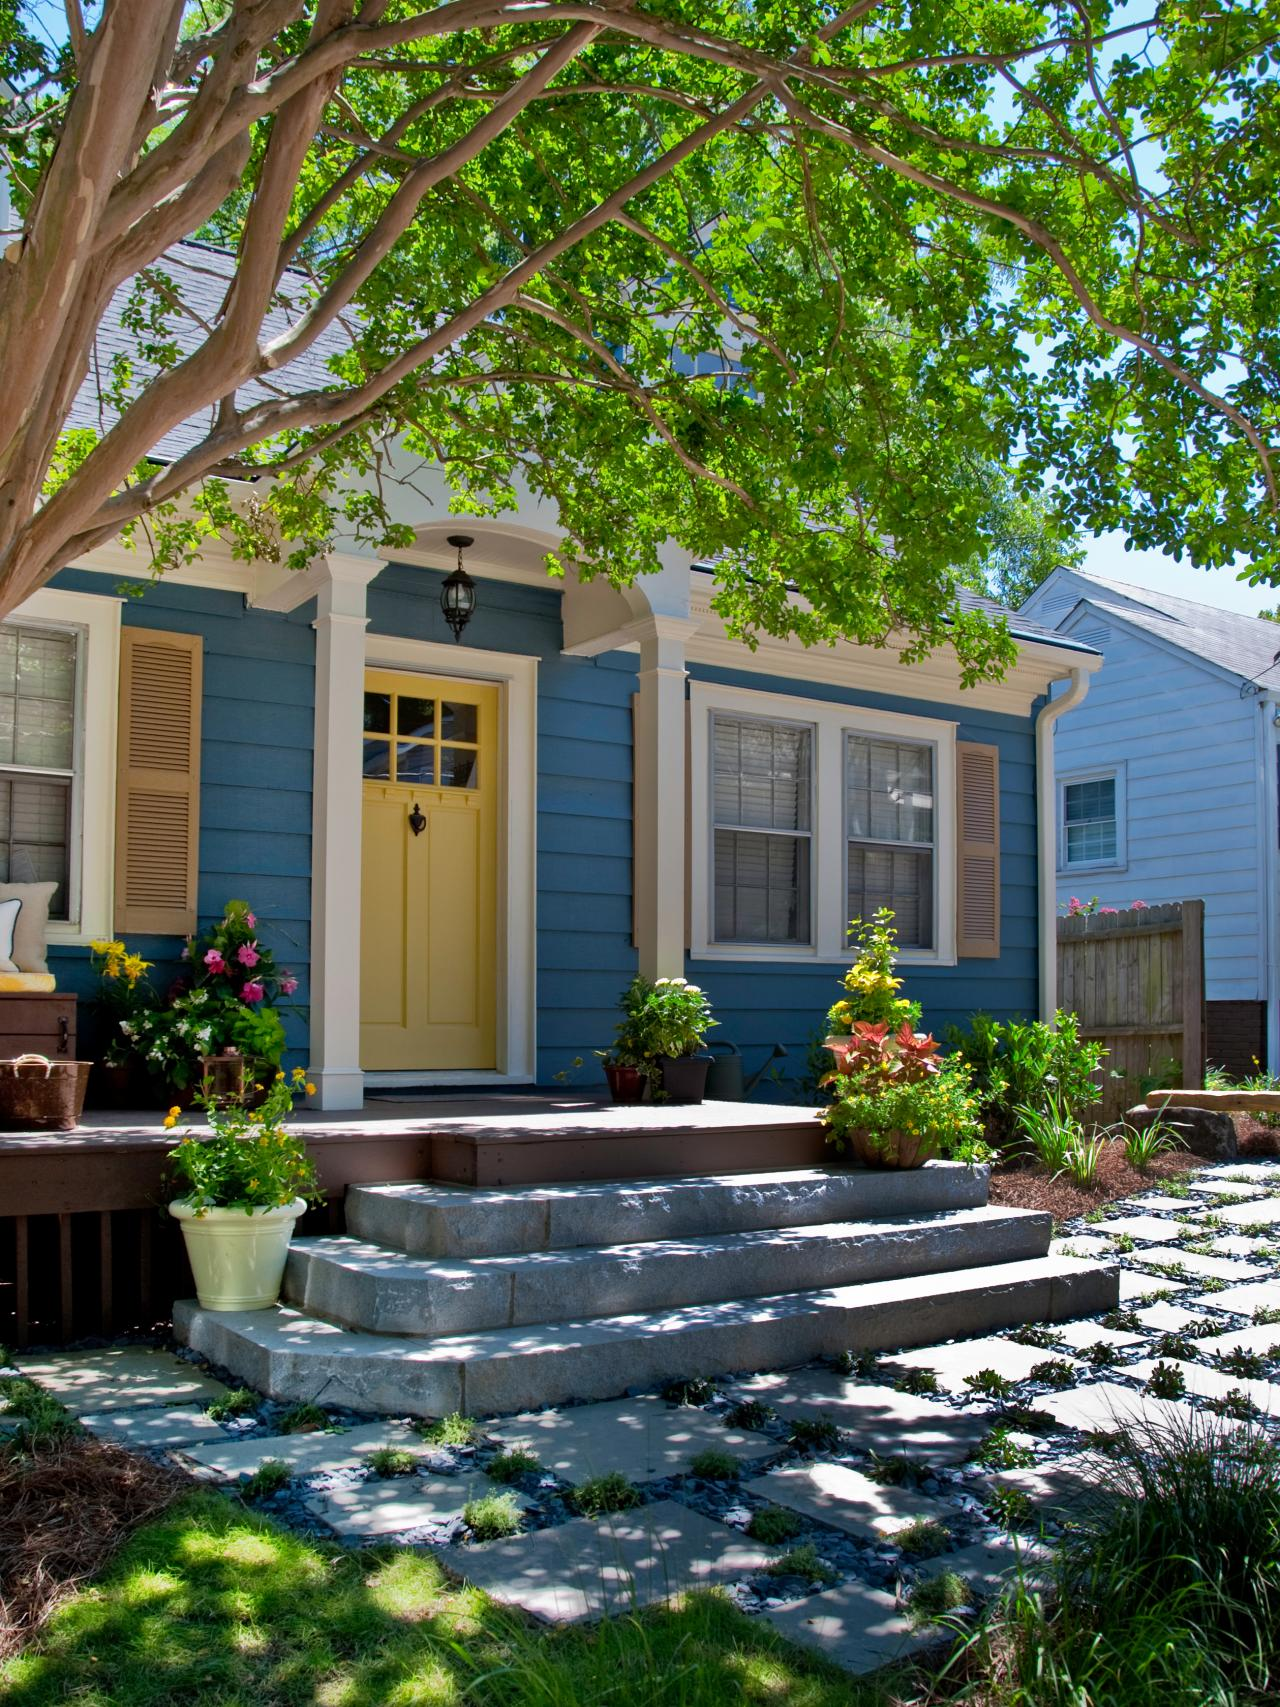 8 Bud Curb Appeal Projects